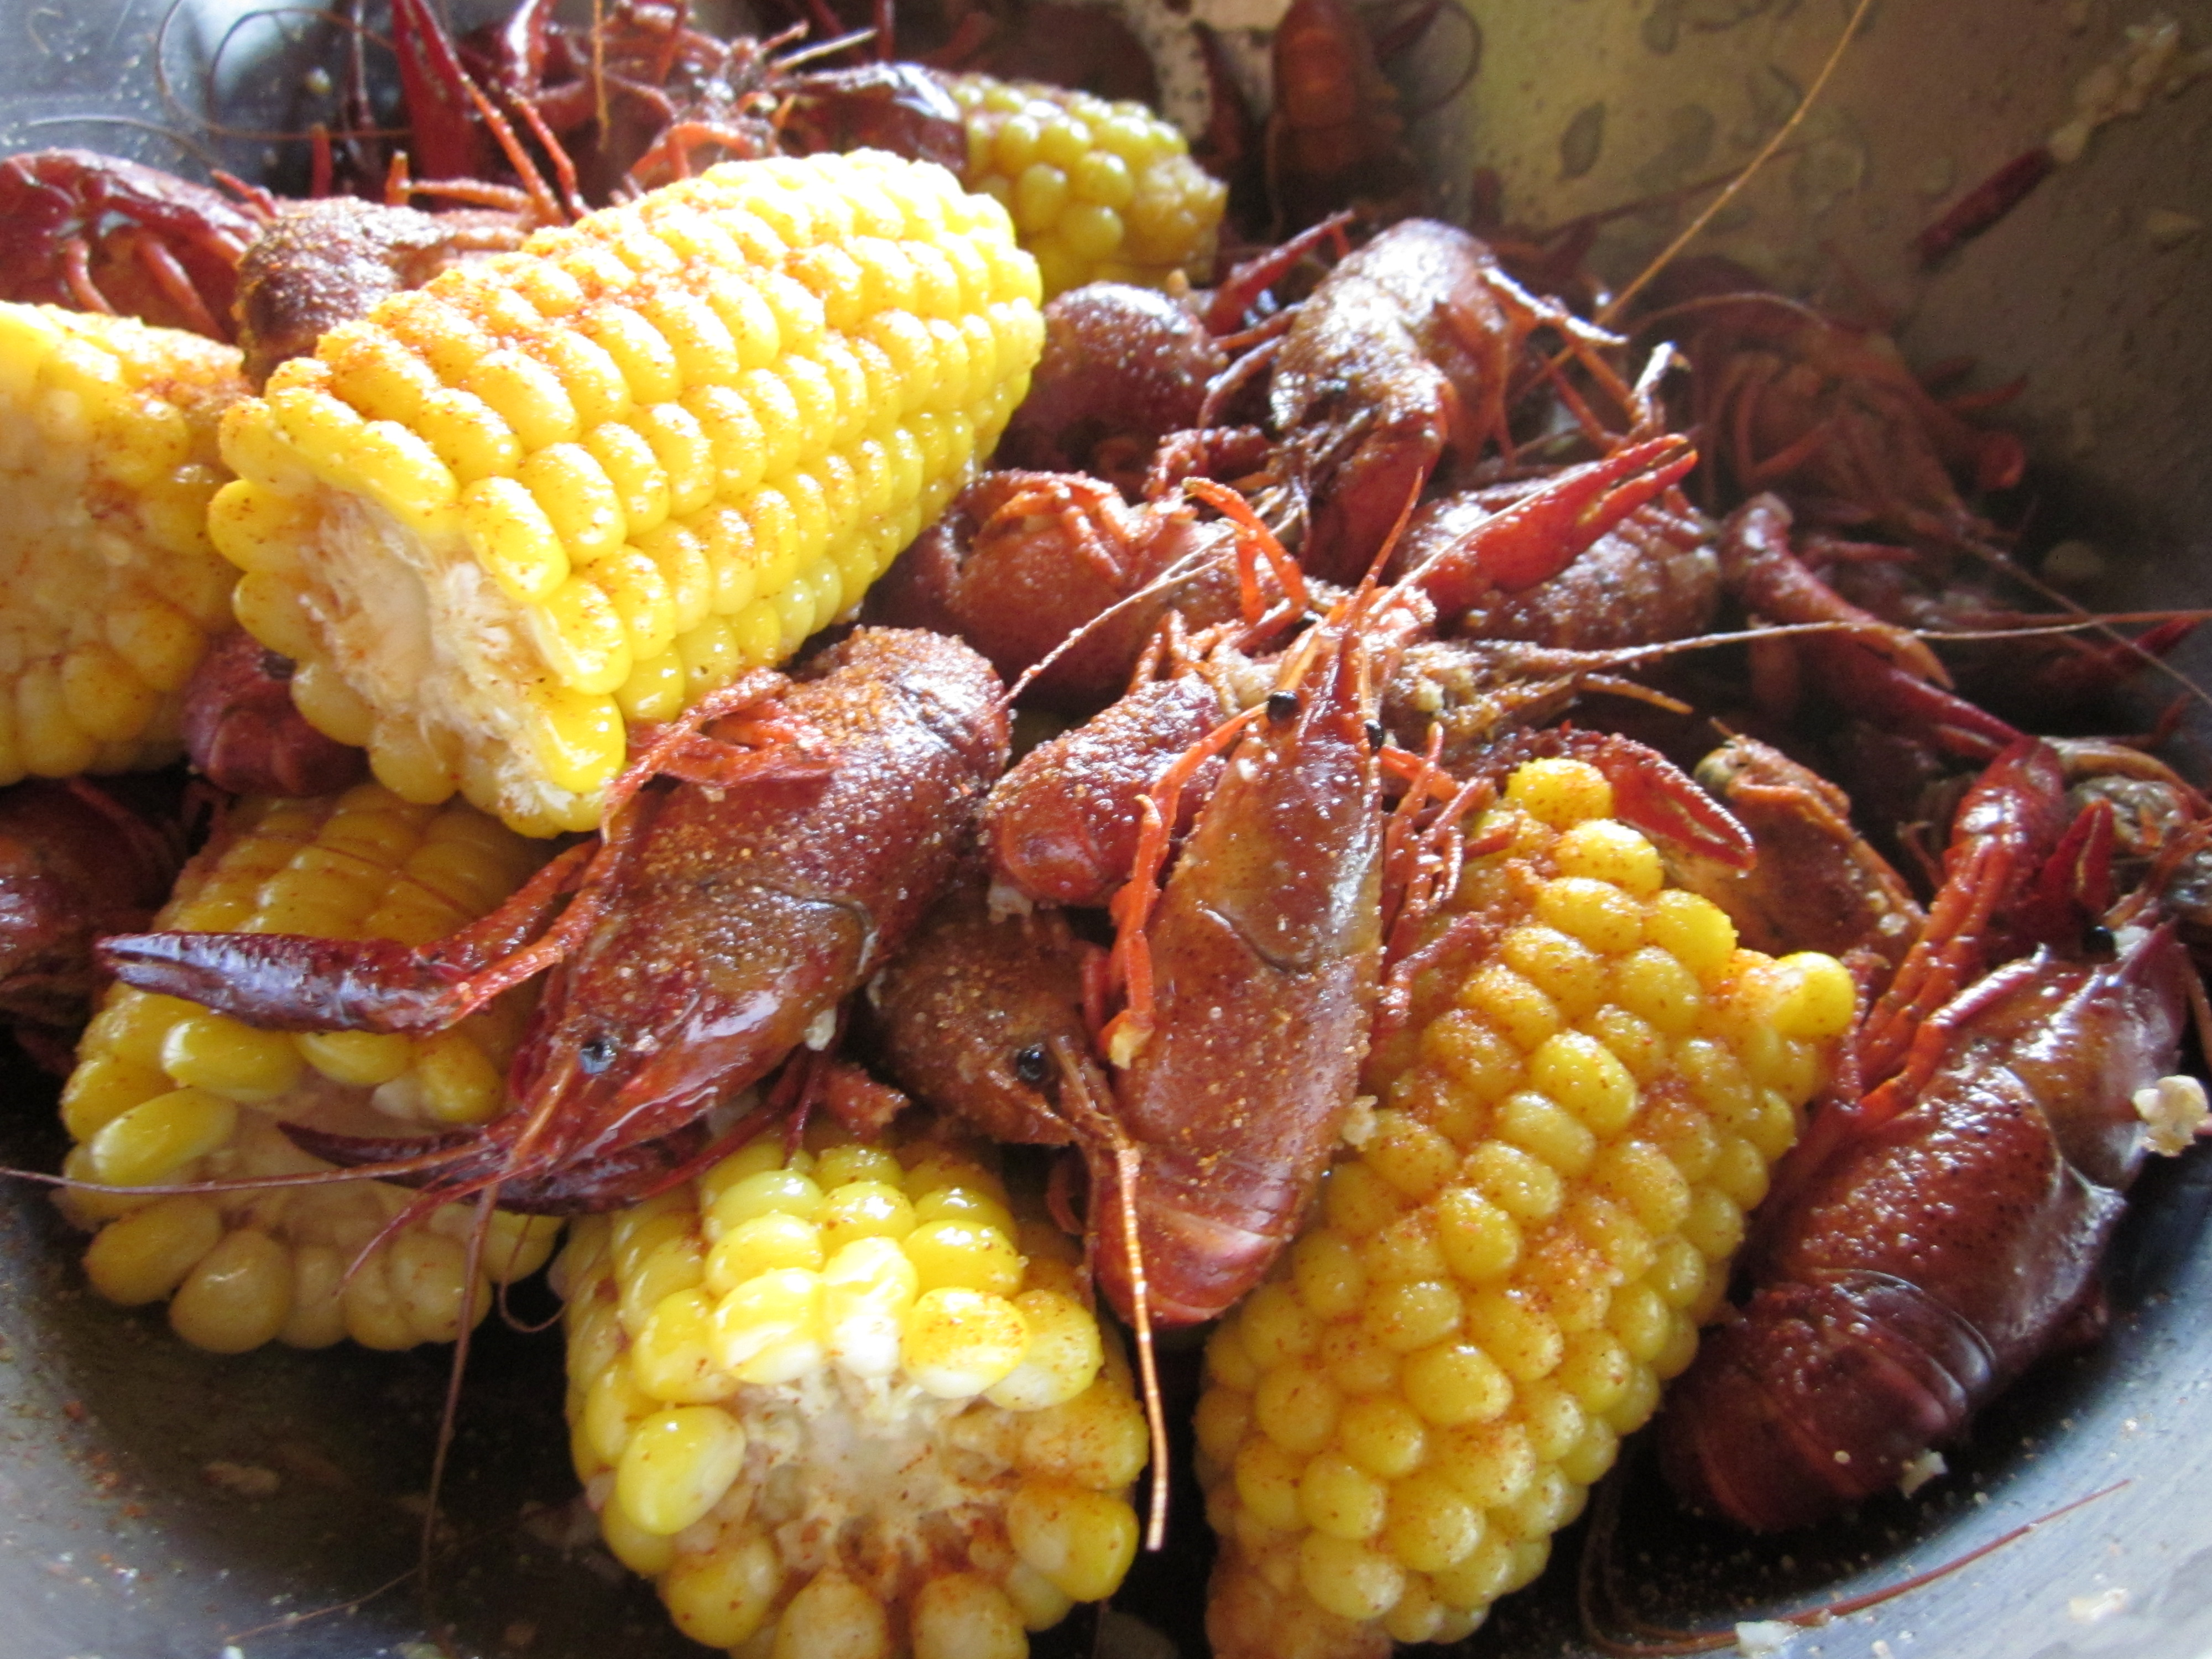 The First Thing You Need To Do With Your Live Crawfish Is To Pour It Into A  Large Tub, Bucket, Whatever Container Is Large Enough To Clean Your Crawfish  In